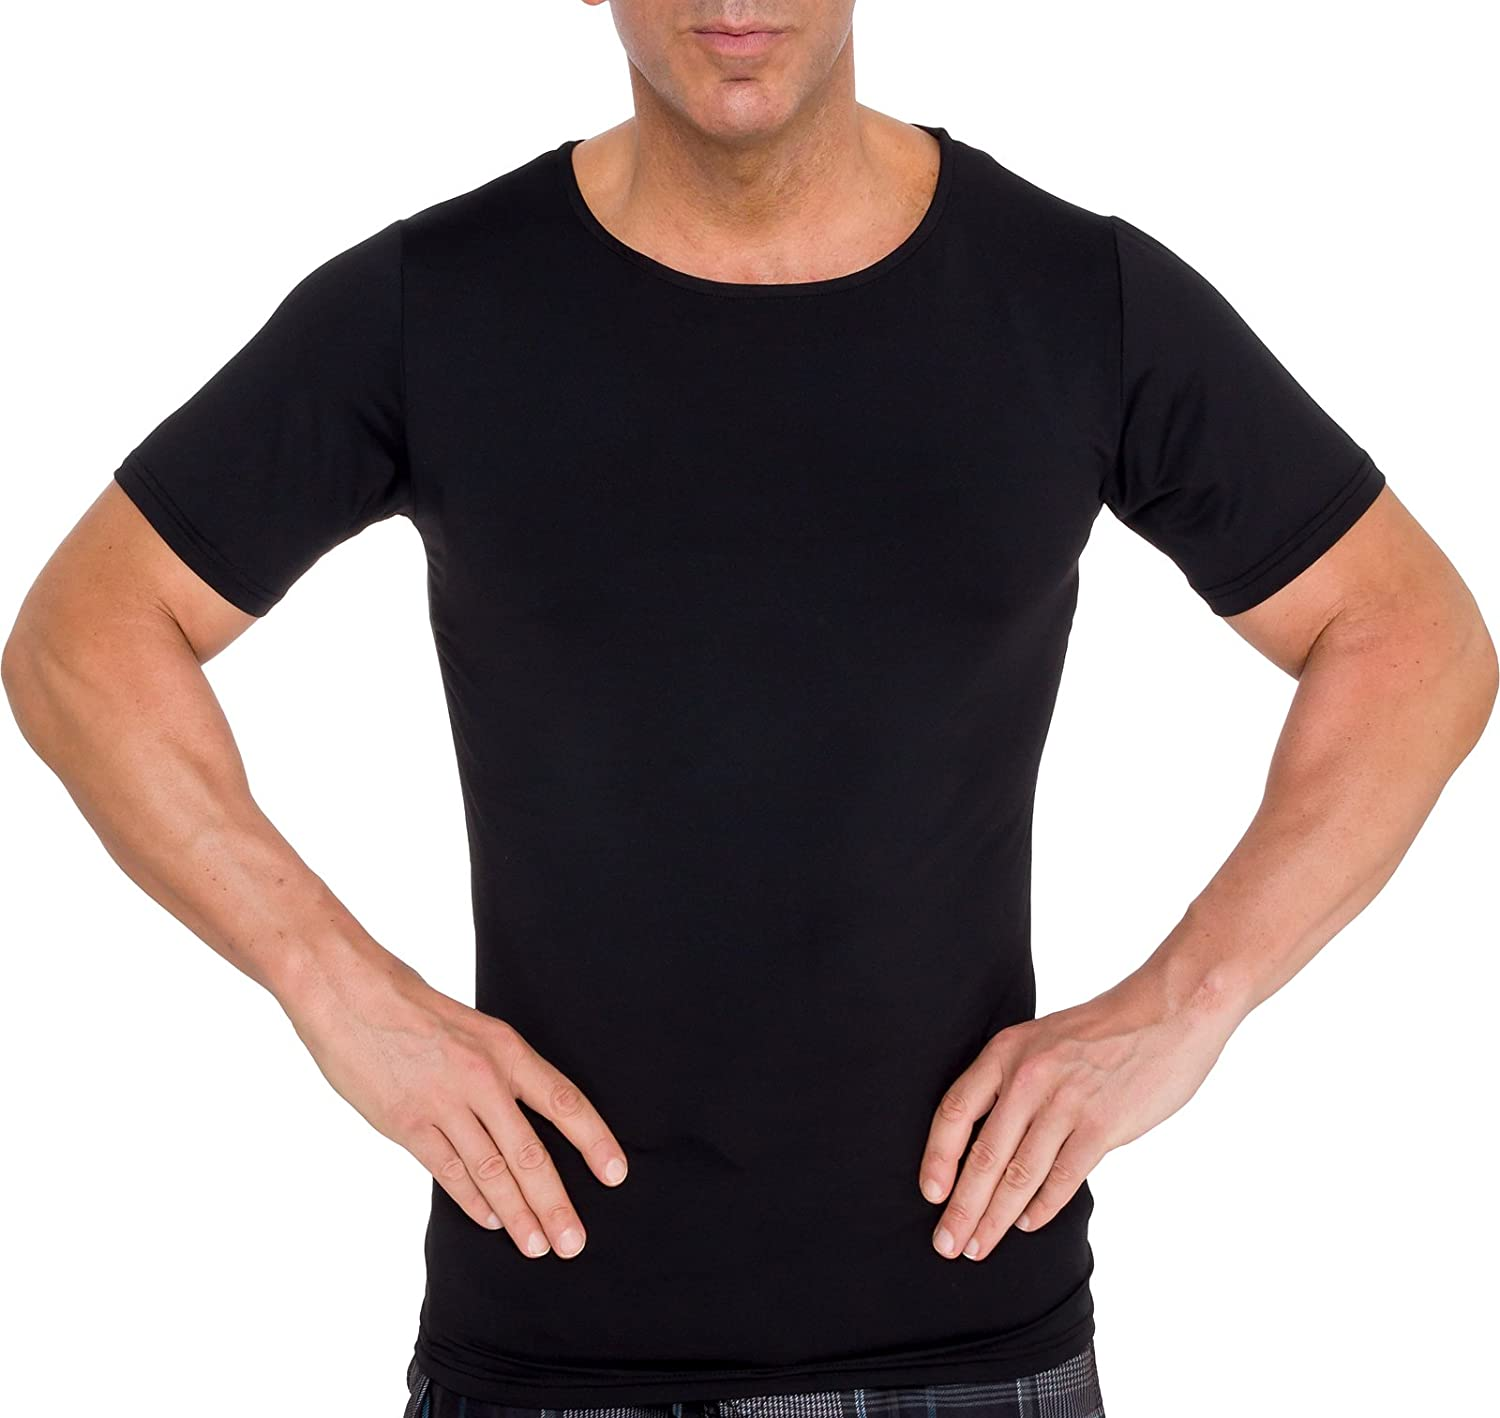 79a362ad79d9a8 LOOK TONED AND SLIM - Lightweight compression throughout the garment keeps  everything pulled in